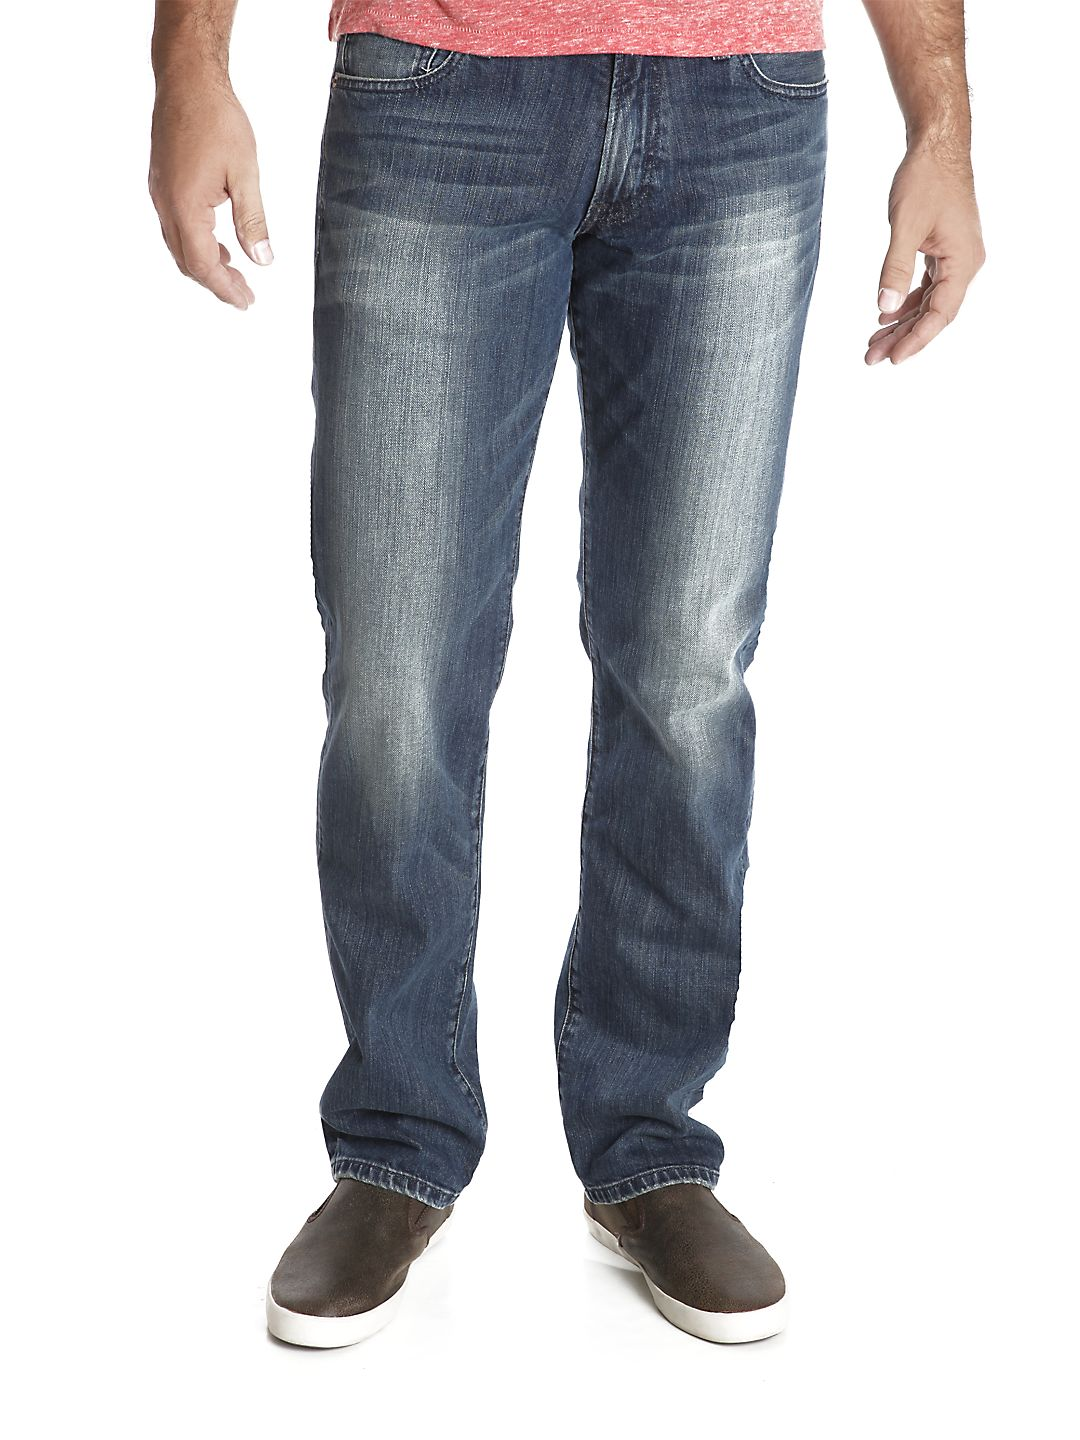 221 Original Straight Blue Gold Wash Jeans